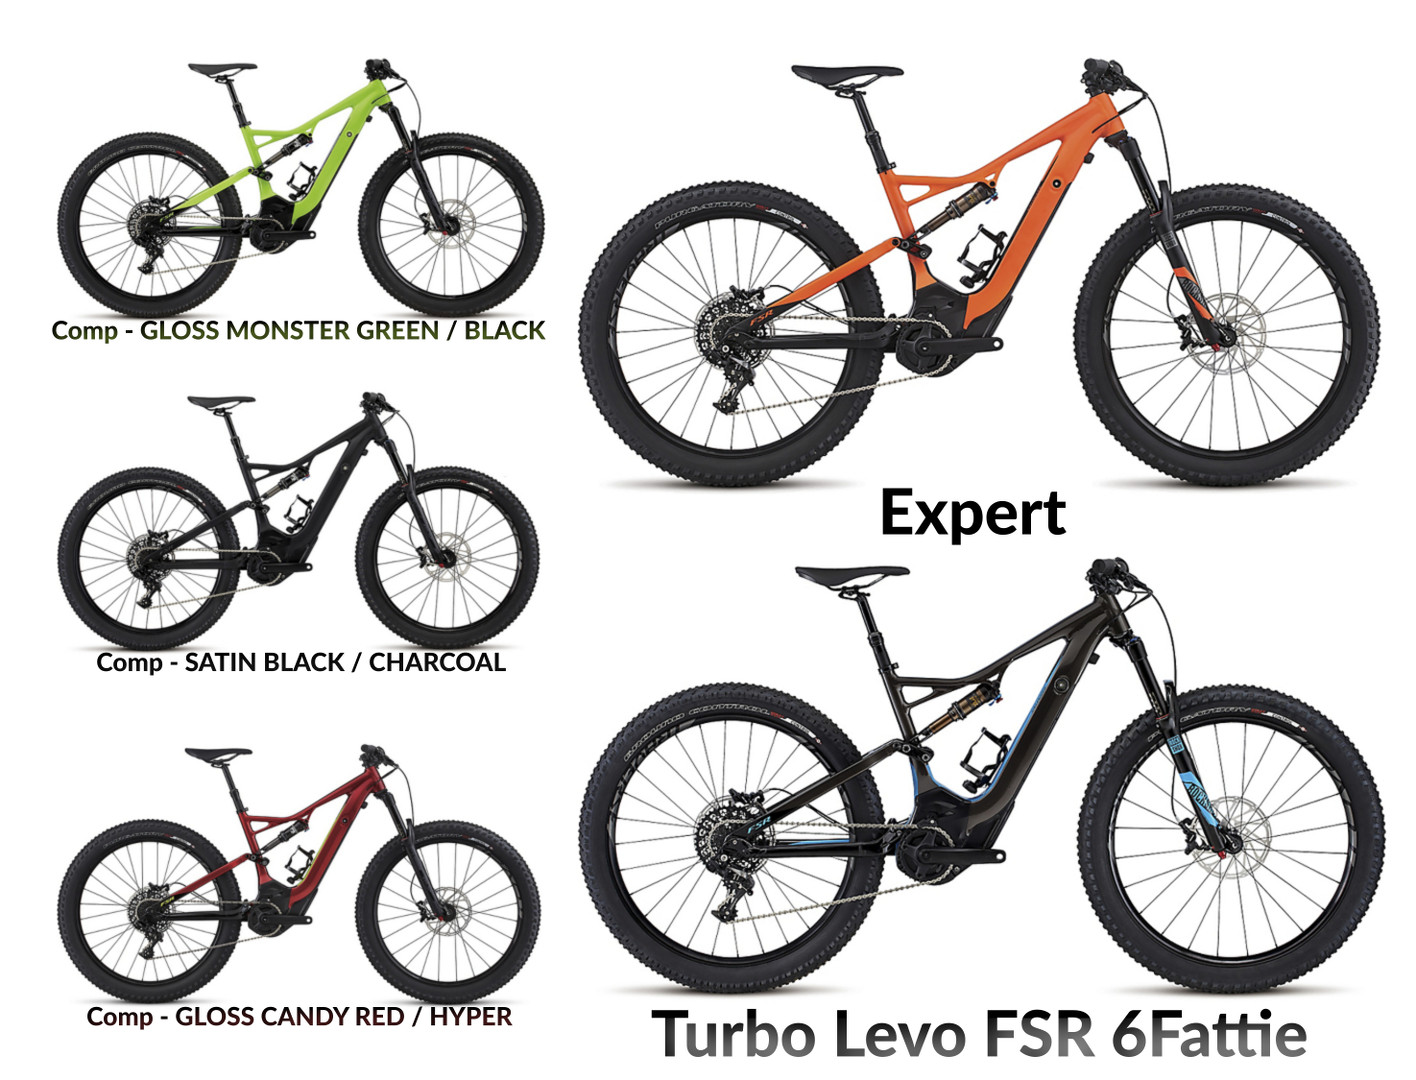 2017 Specialized Turbo Levo FSR 6fattie Modellübersicht